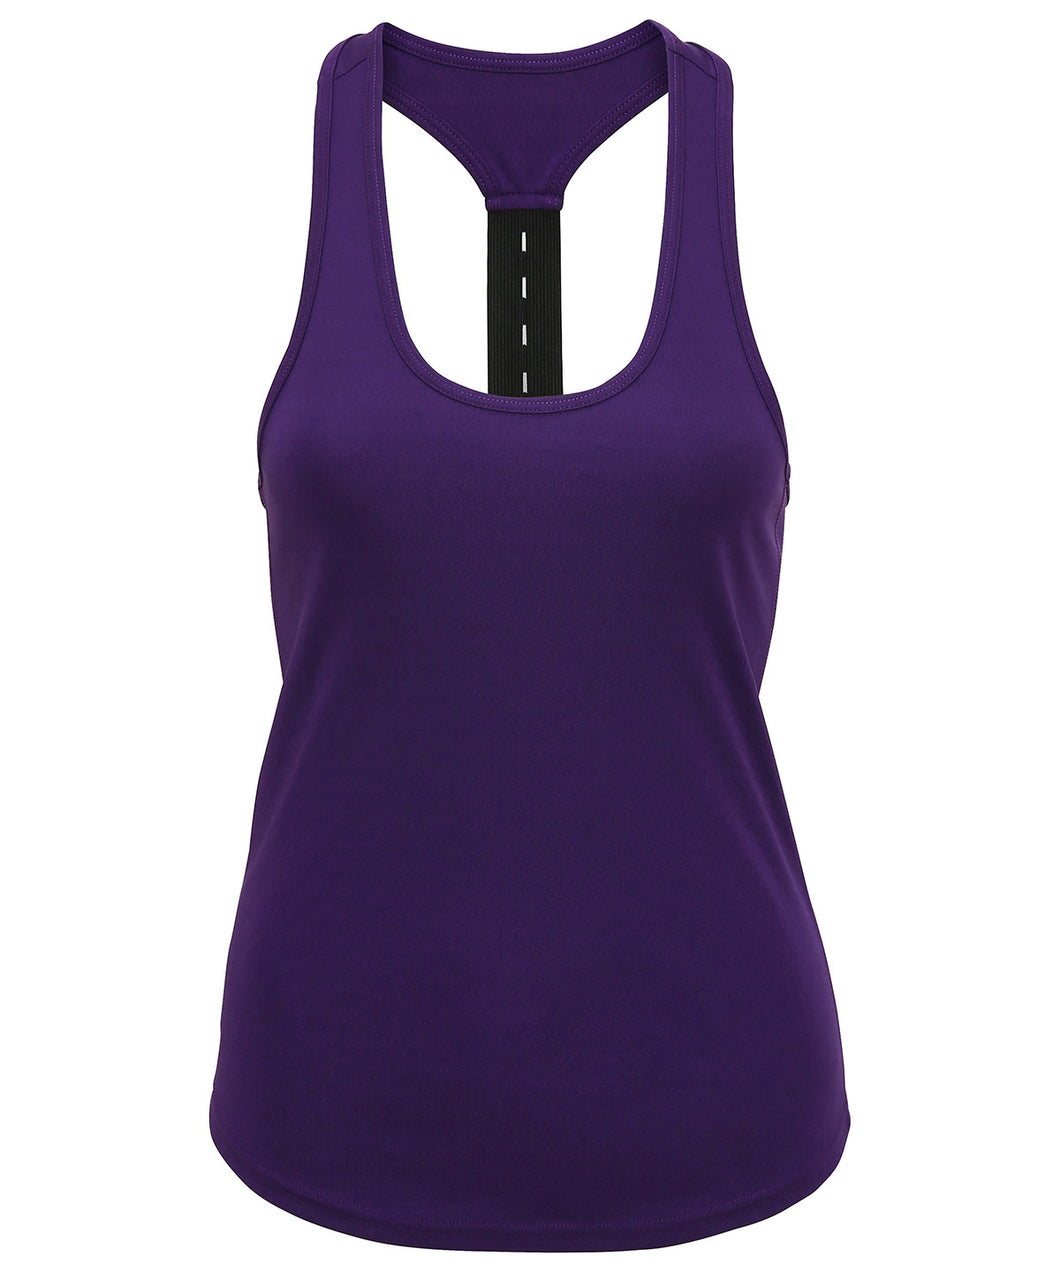 Women's performance strap back vest available in 9 colours